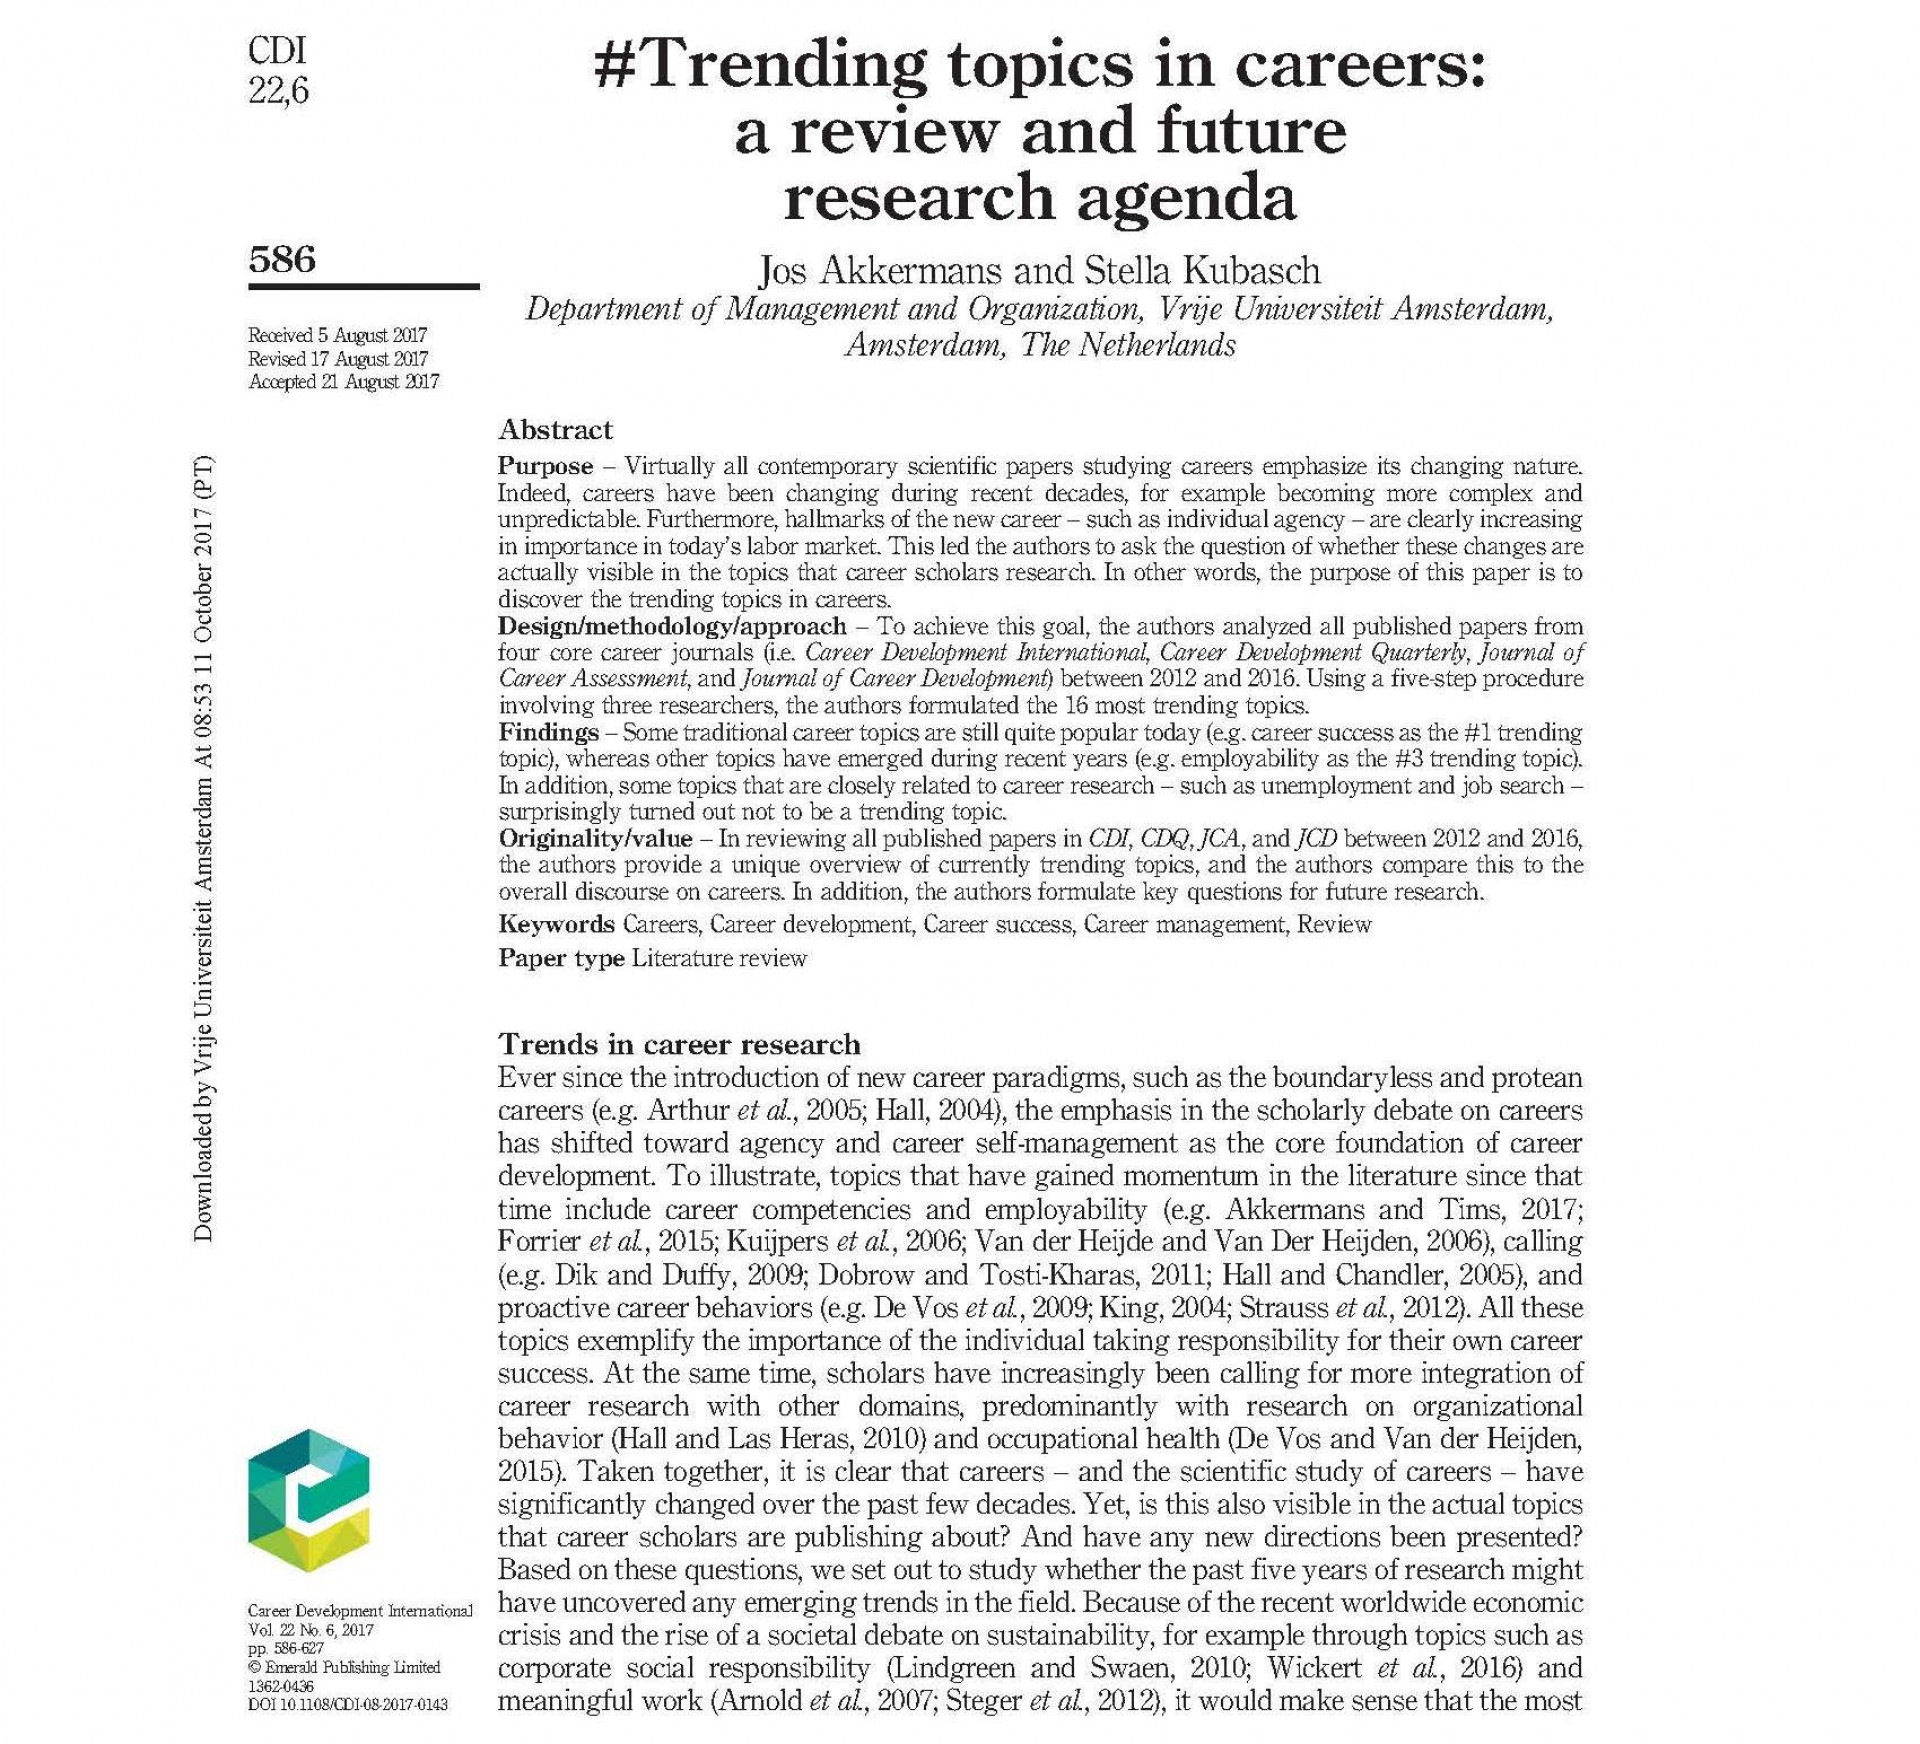 022 59e096d33a29650001209782 1620 20akkermans202620kubasch20201720 20trending20topics20in20careers Research Paper Topics For Impressive Papers In Educational Management Psychology High School Students College 1920